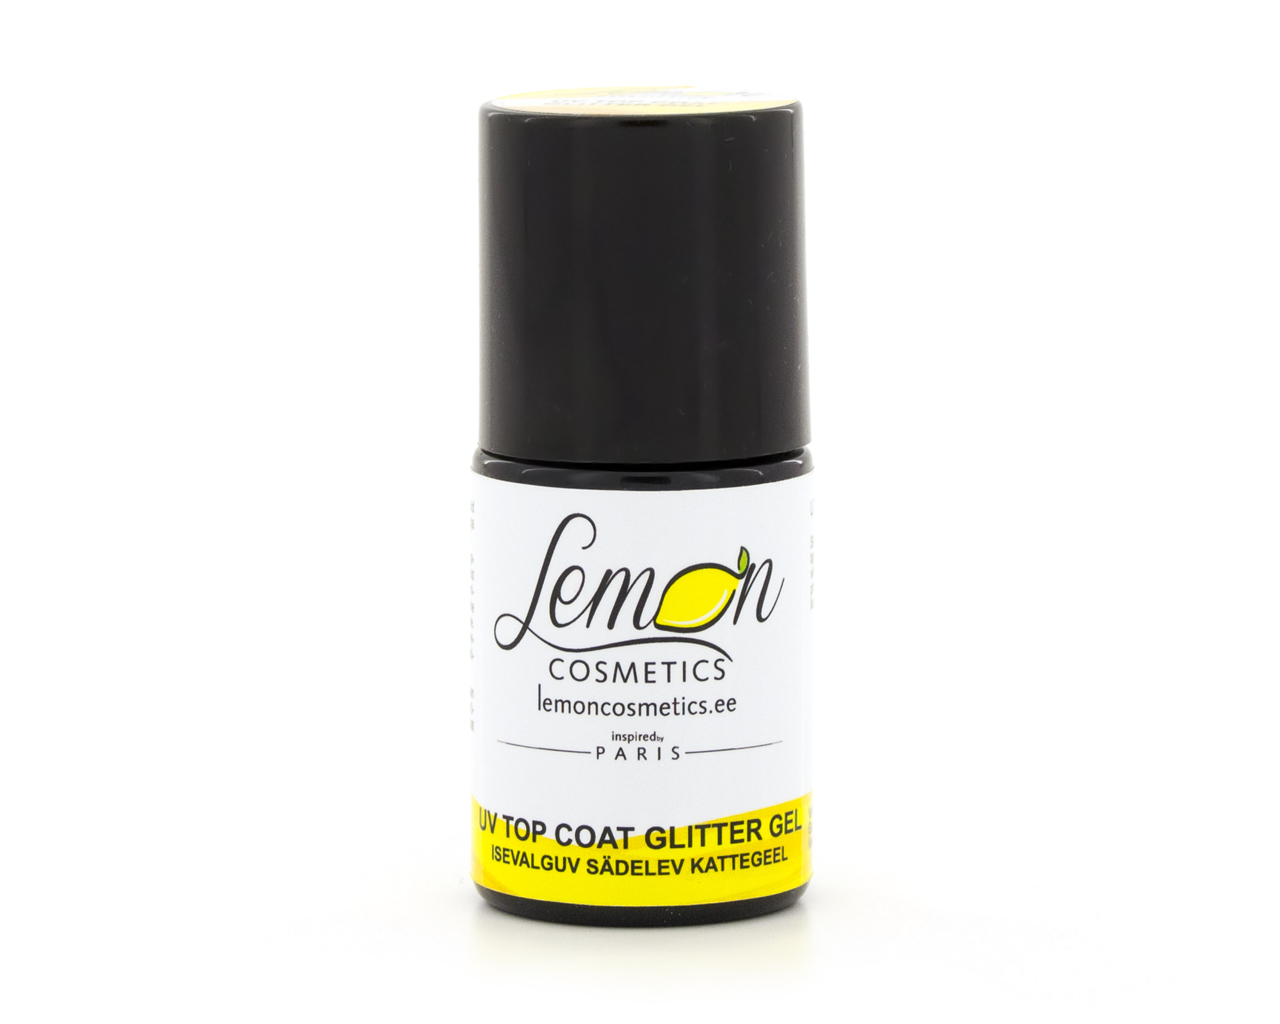 lemon cosmetics uv top coat silver glitter gel. Black Bedroom Furniture Sets. Home Design Ideas